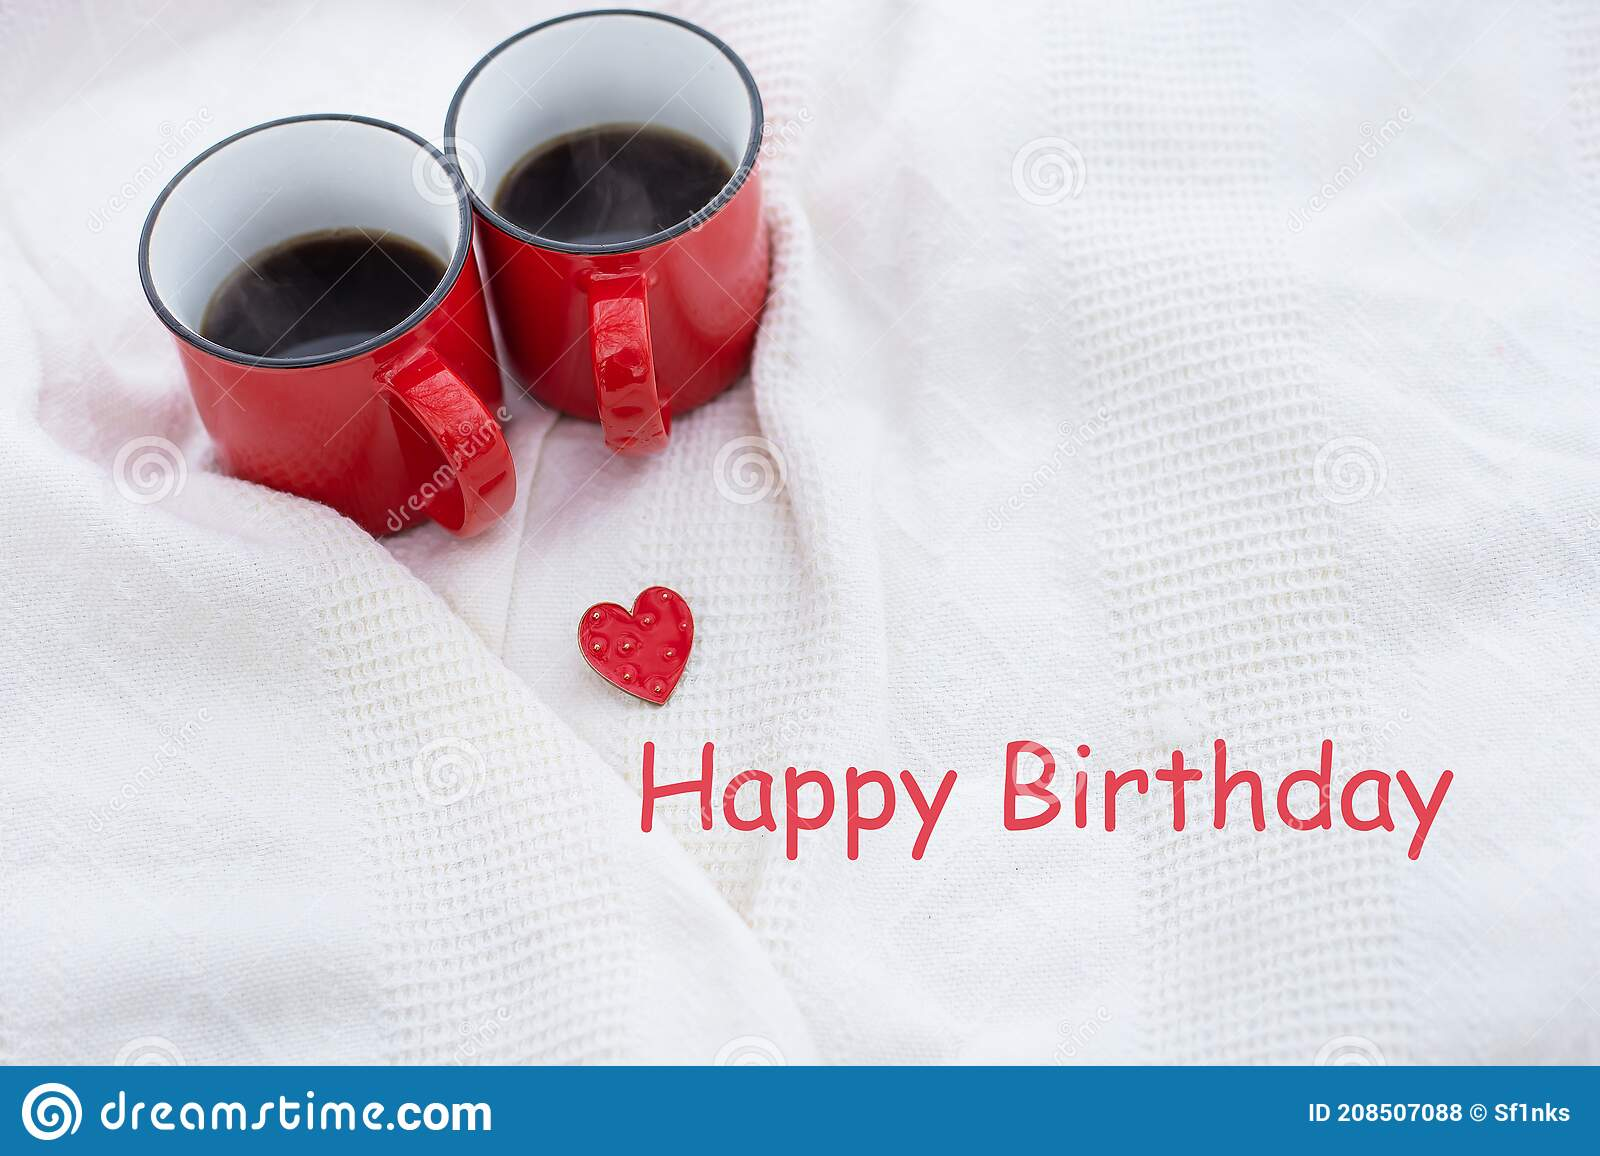 1 983 Happy Birthday Coffee Card Photos Free Royalty Free Stock Photos From Dreamstime